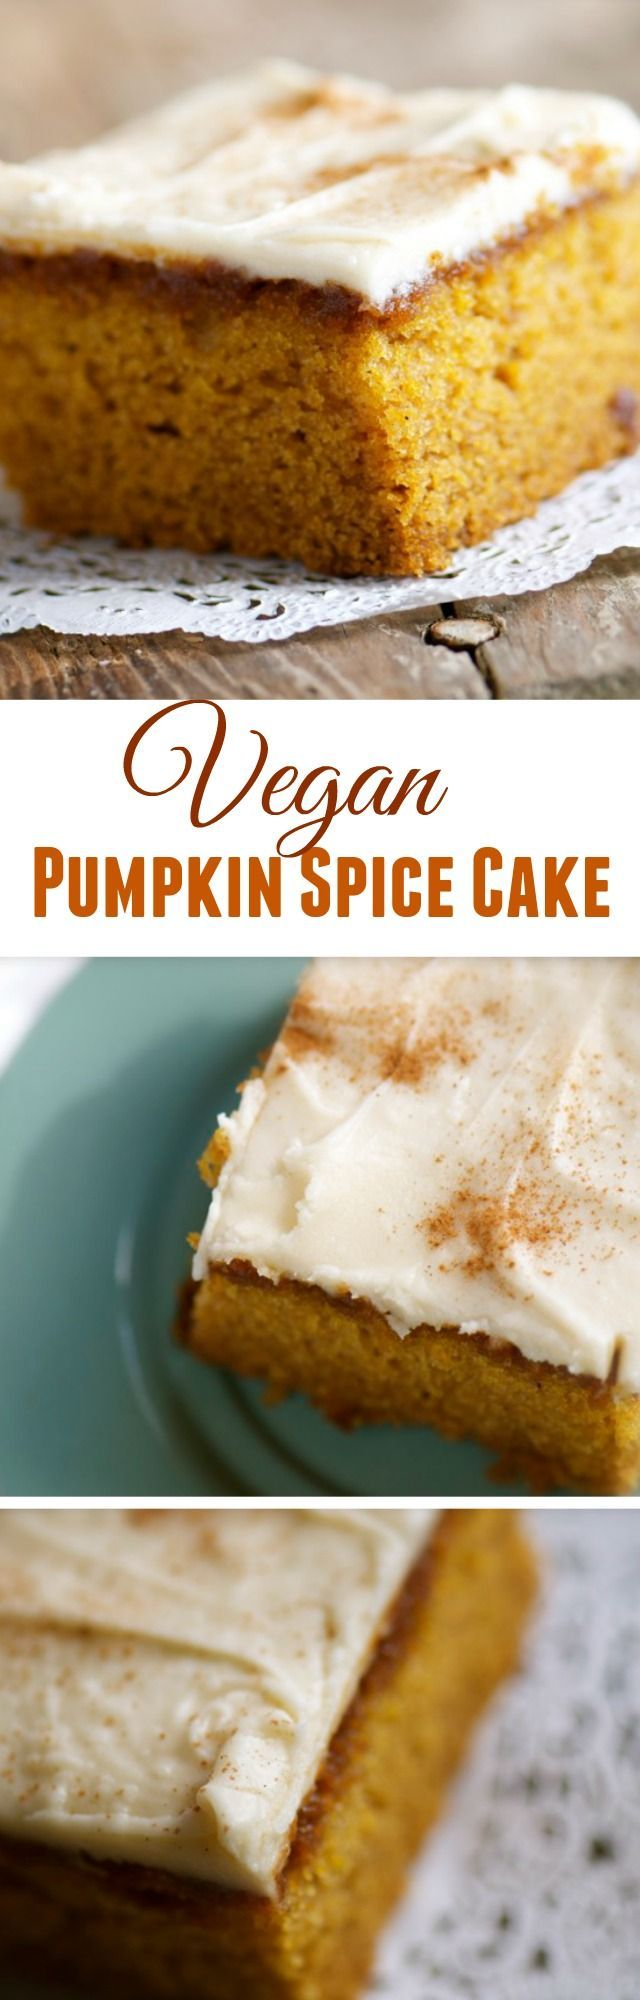 Easy Pumpkin Spice Cake Recipe (Vegan) - Namely Marly